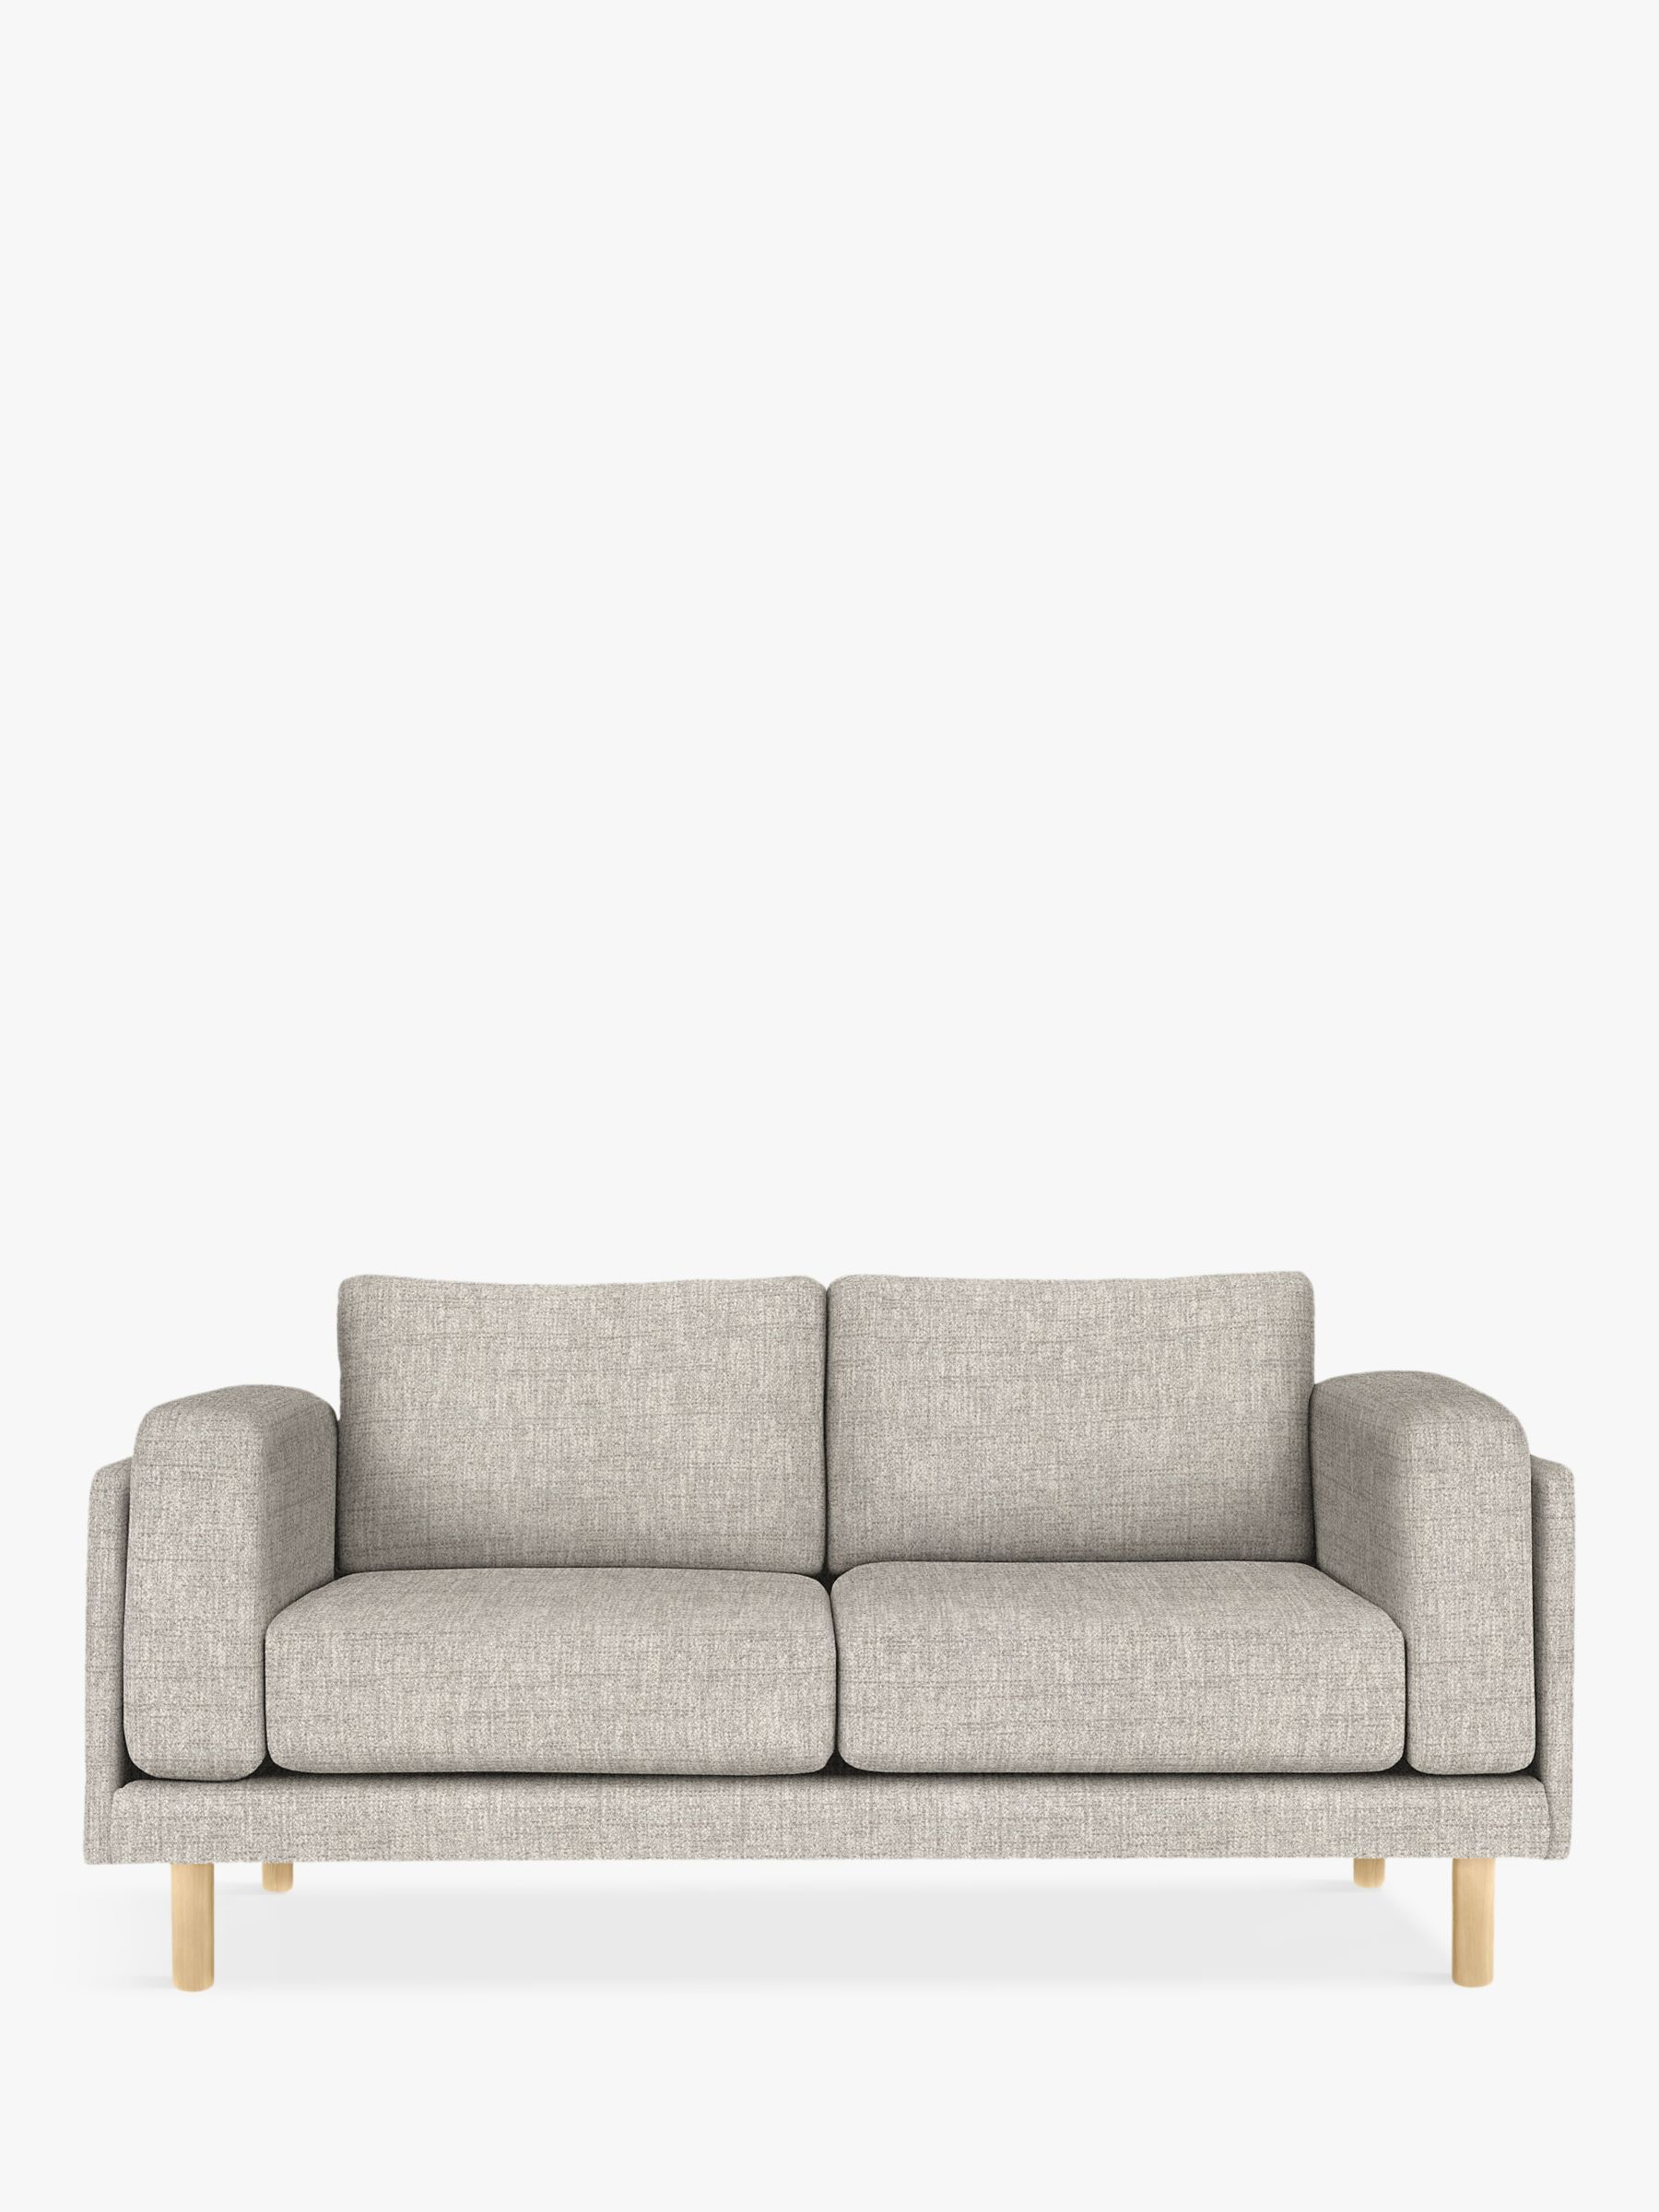 Design Project By John Lewis No 002 Medium 2 Seater Sofa Arya Blue Grey 2 Seater Sofa Design Projects Blue Grey